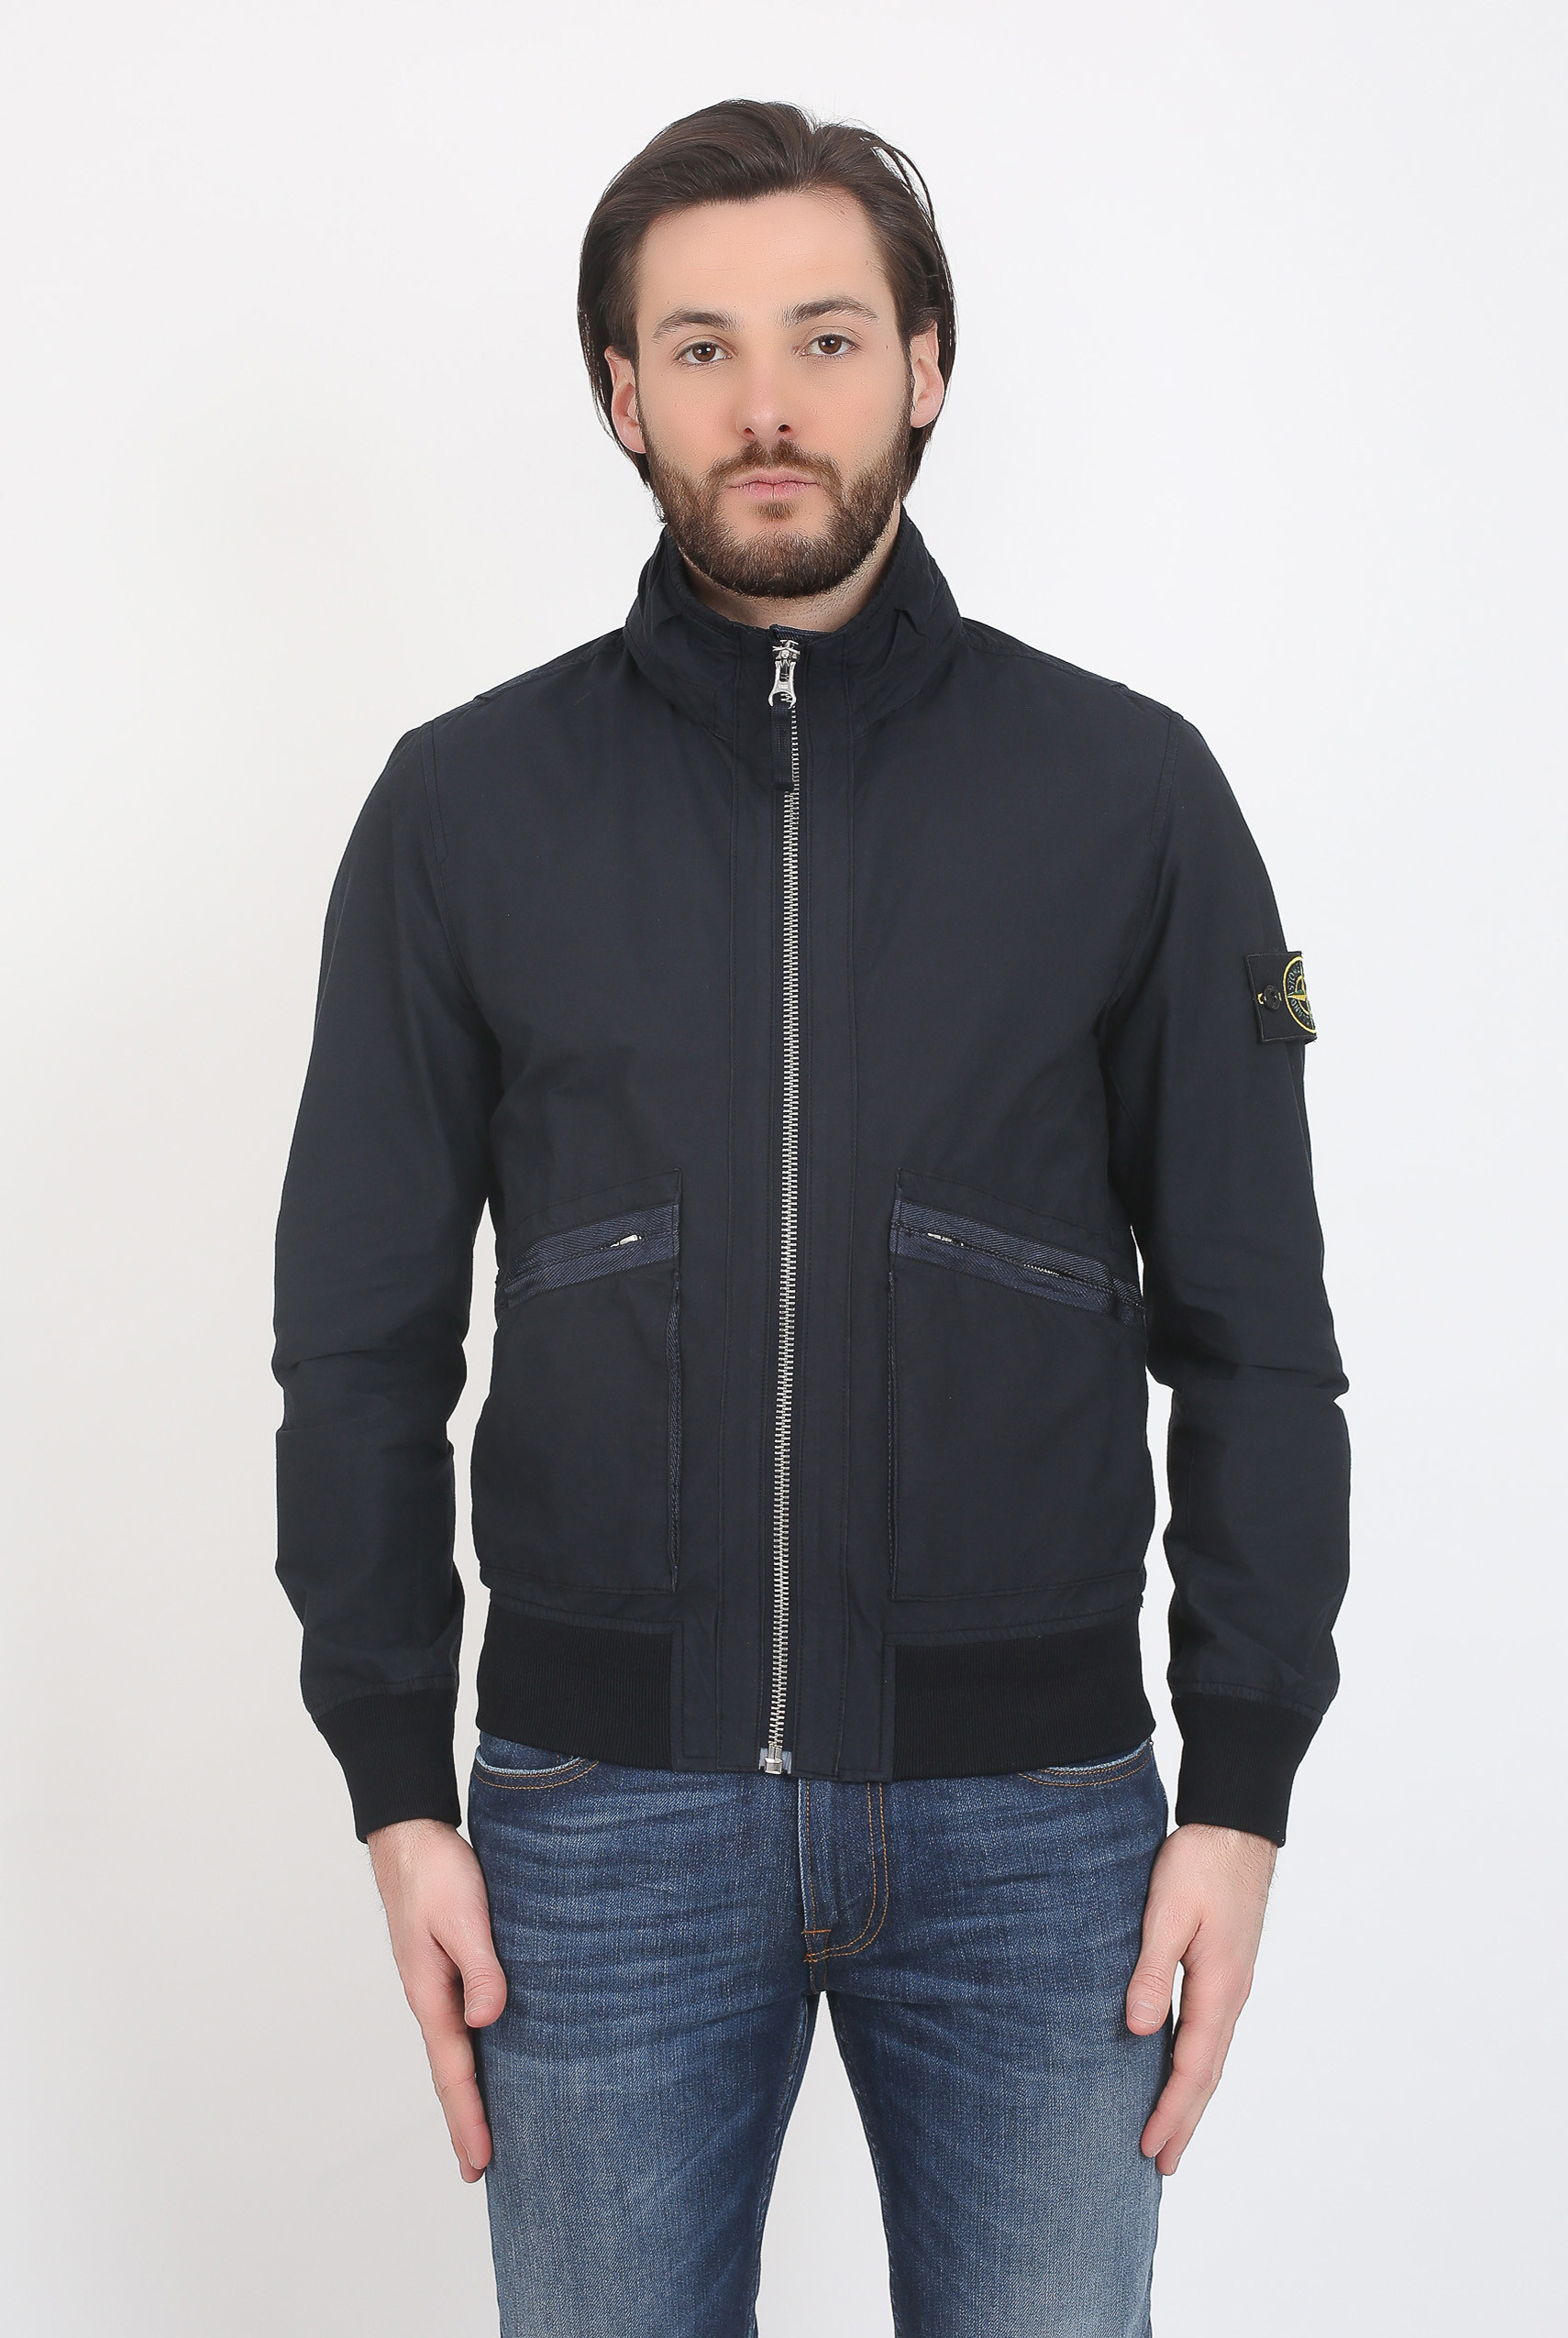 BLOUSON STONE ISLAND LIGHT COTTON NYLON TWILL MARINE 681543330-V0020